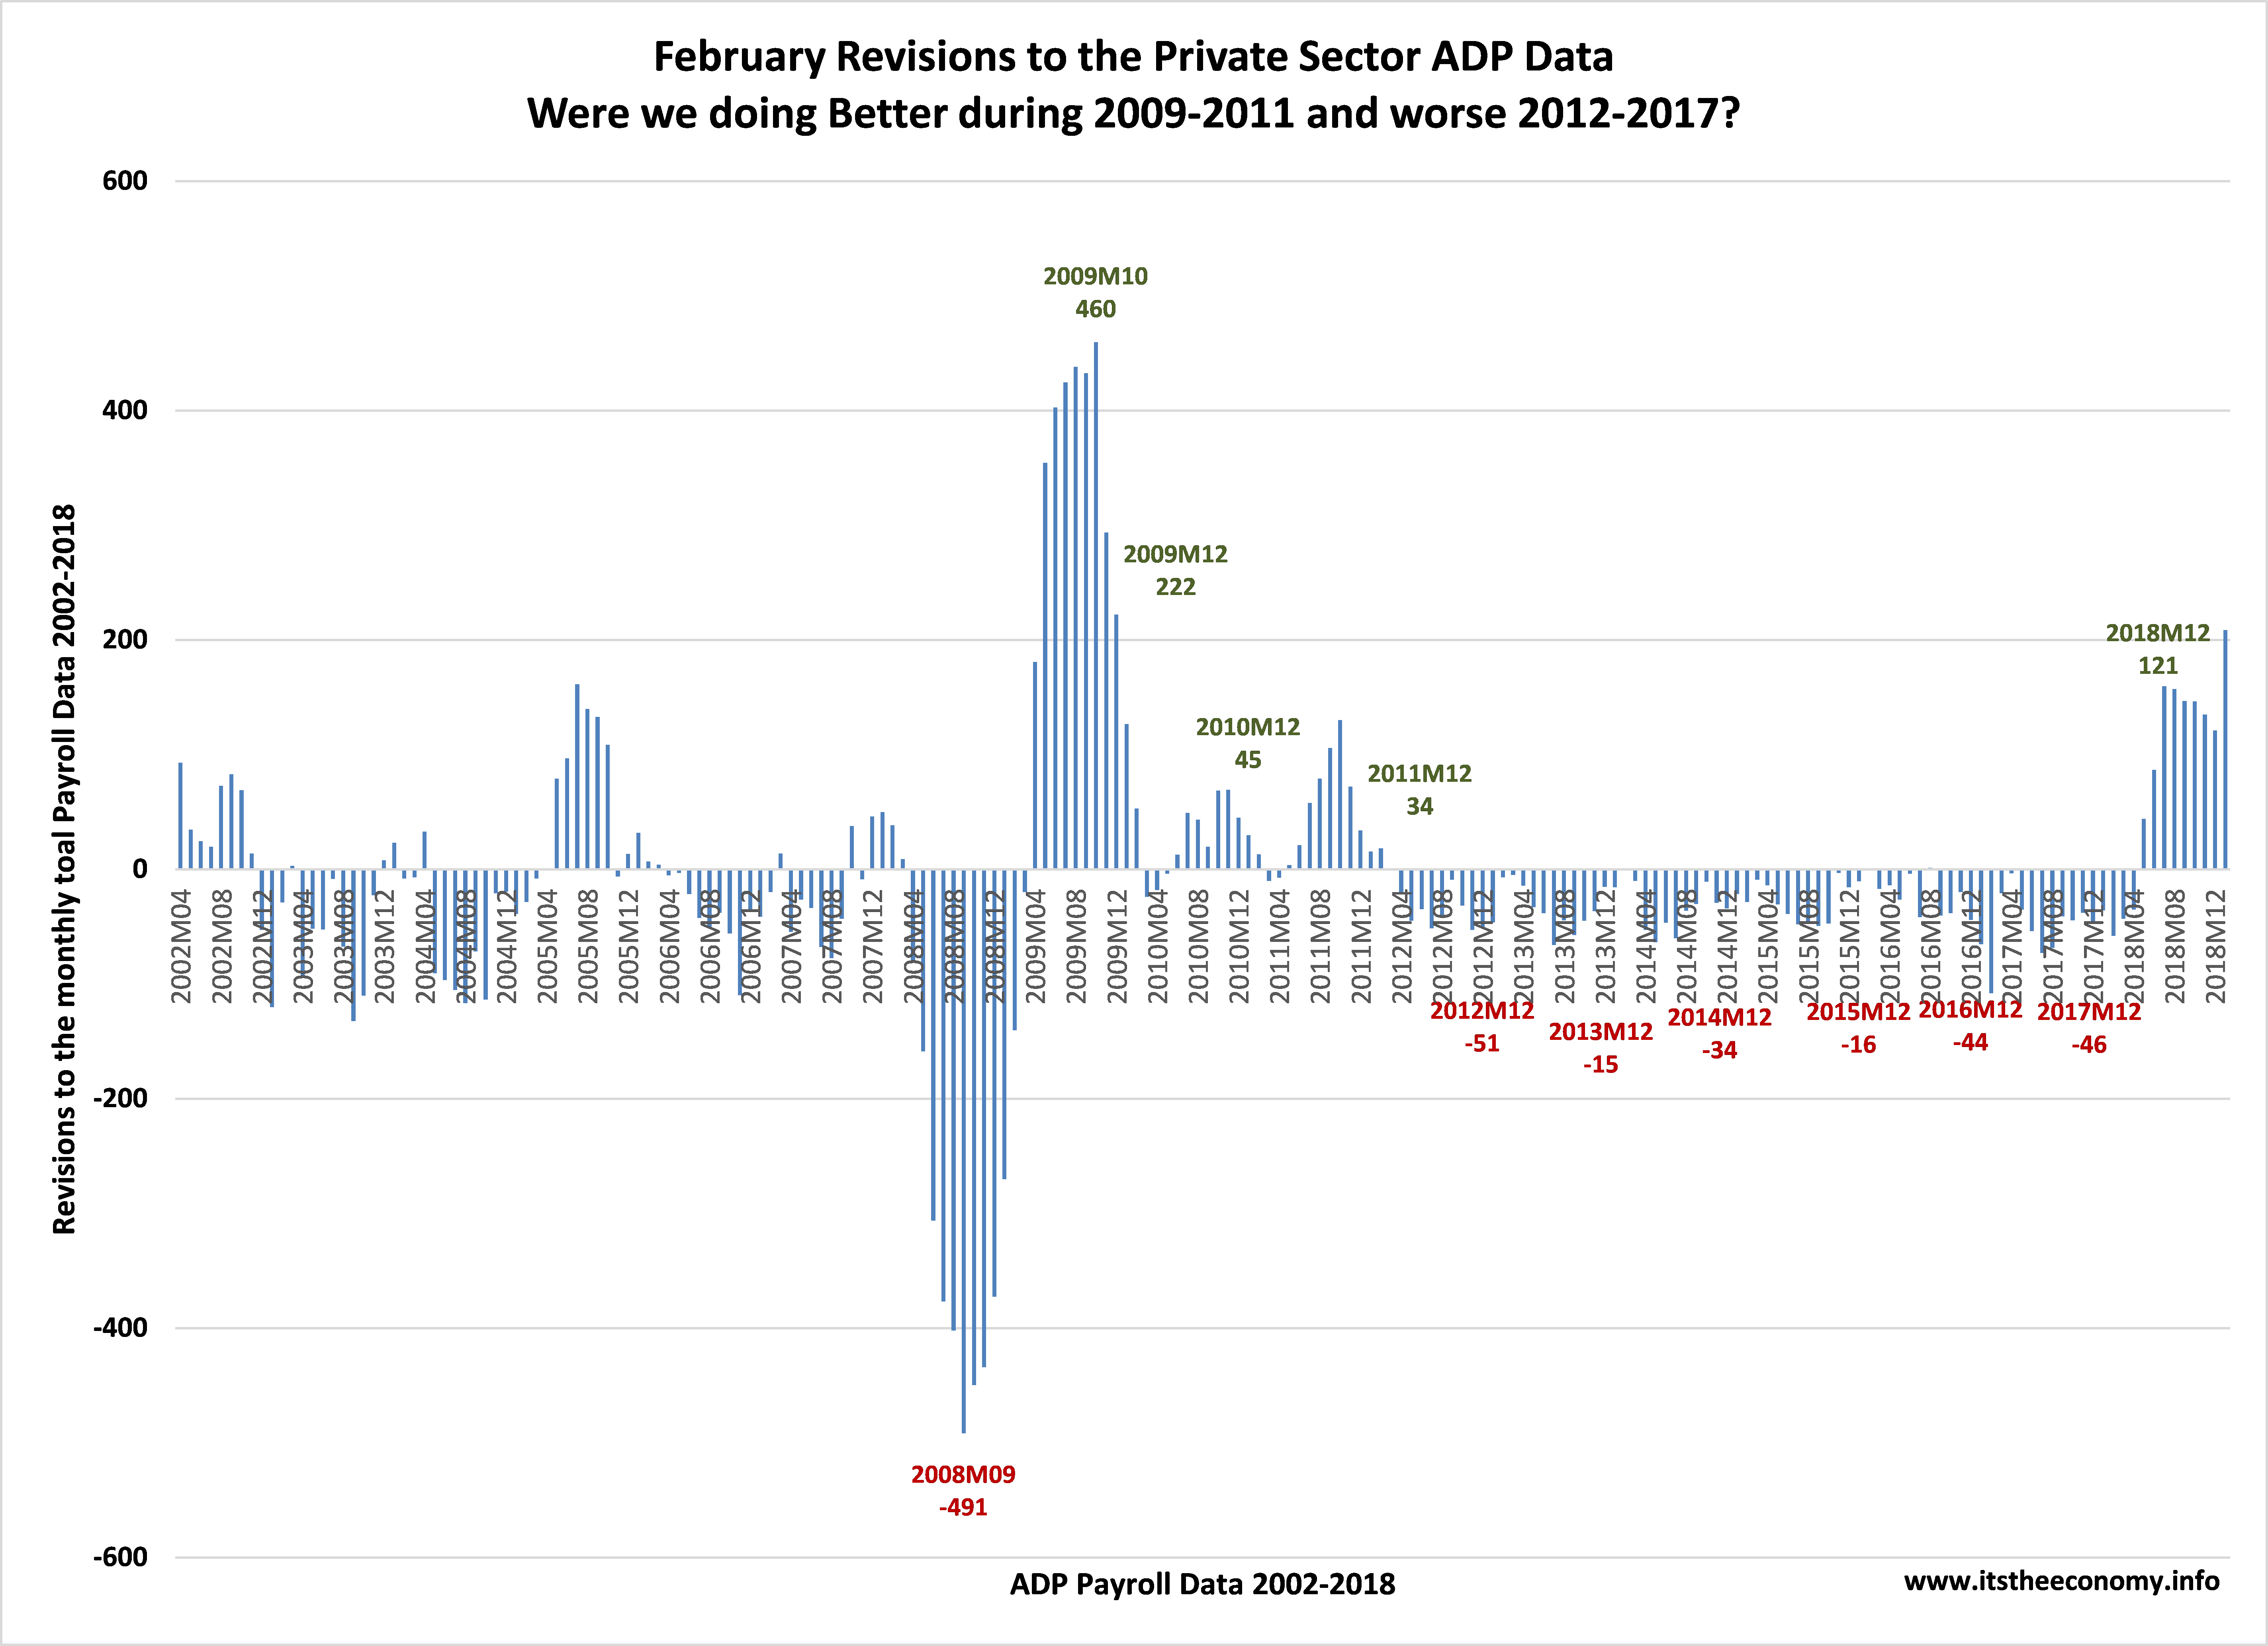 The Government Current Employment Statistics data was revised after ADP released their January Payroll Report. ADP revised their data back to 2002 during the past month. 2008 was worse than we thought. 2009 was better than we thought. Both 2018 and January 2019 were revised higher than last reported.